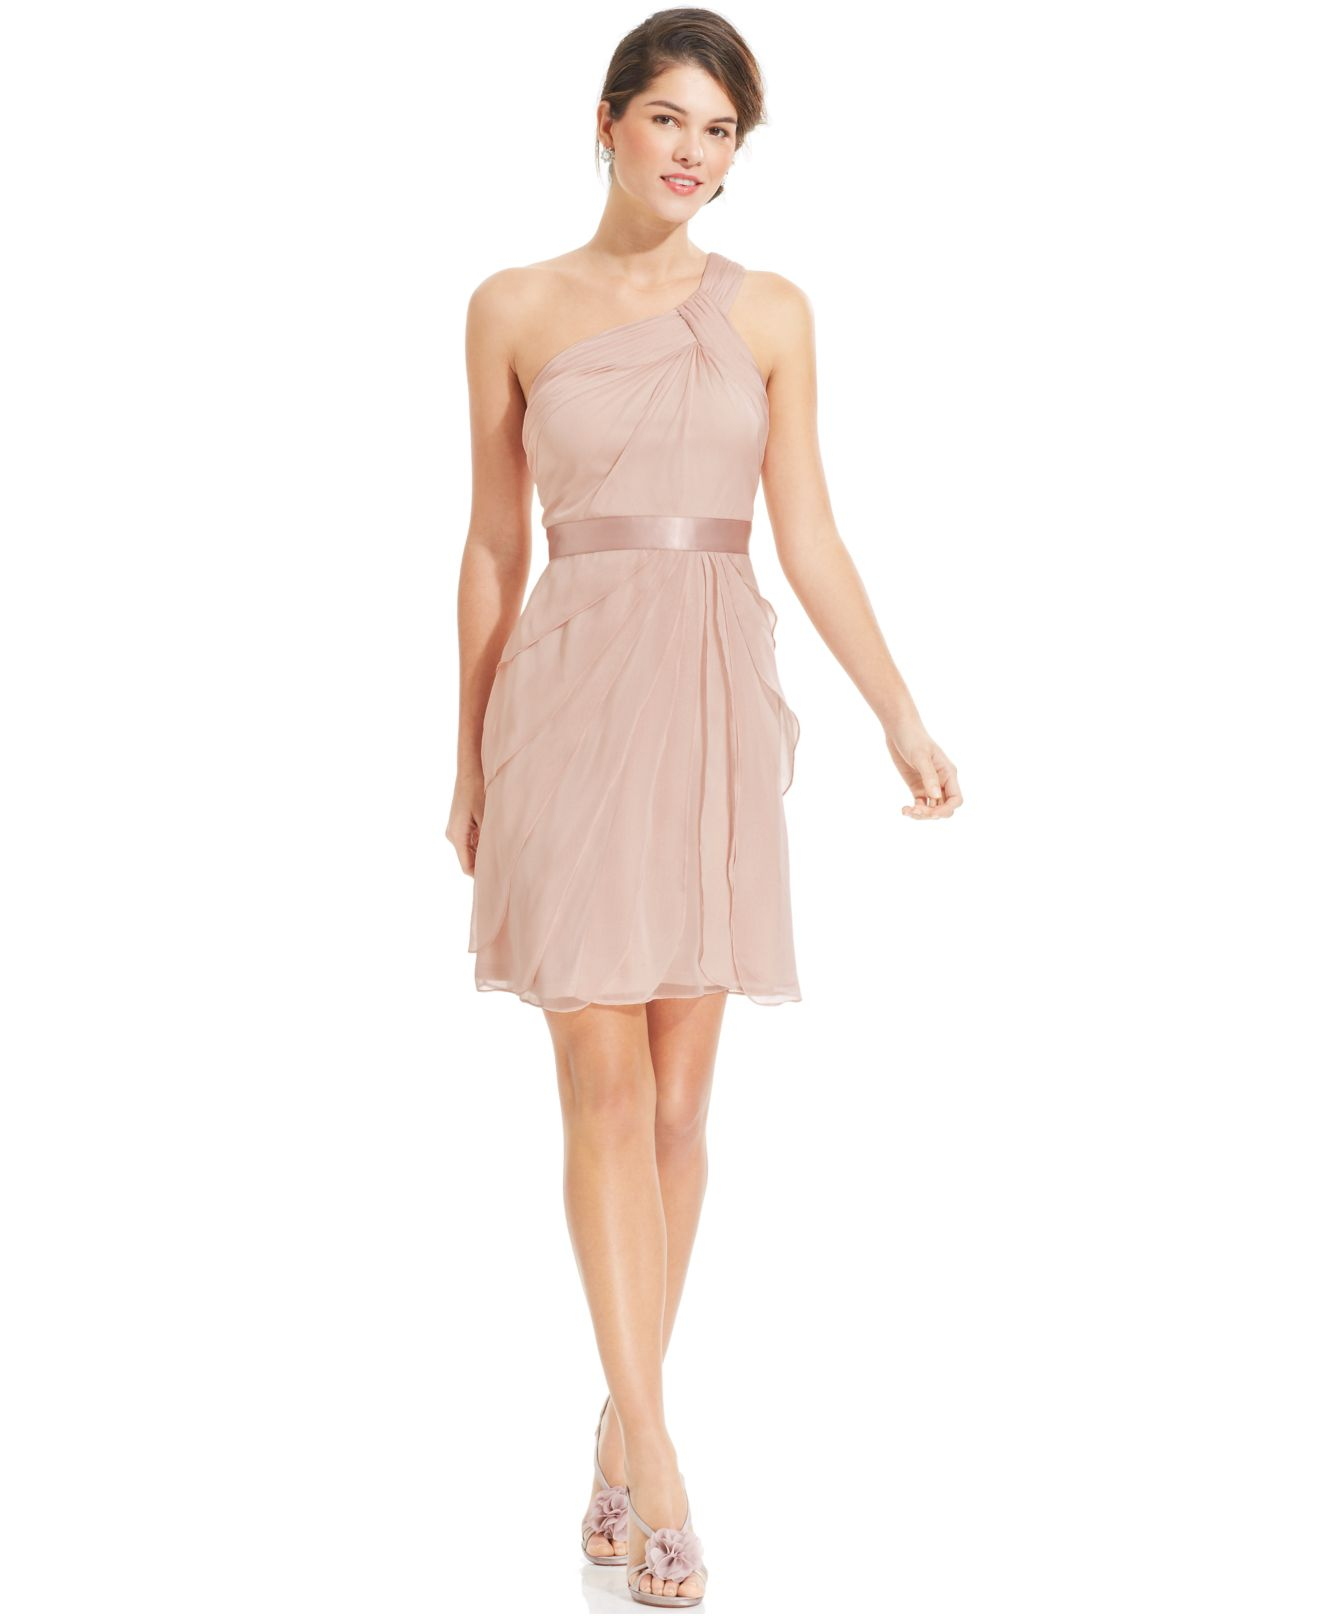 73d587bb3ea1 Lyst - Adrianna Papell One-shoulder Tiered Chiffon Dress in Pink